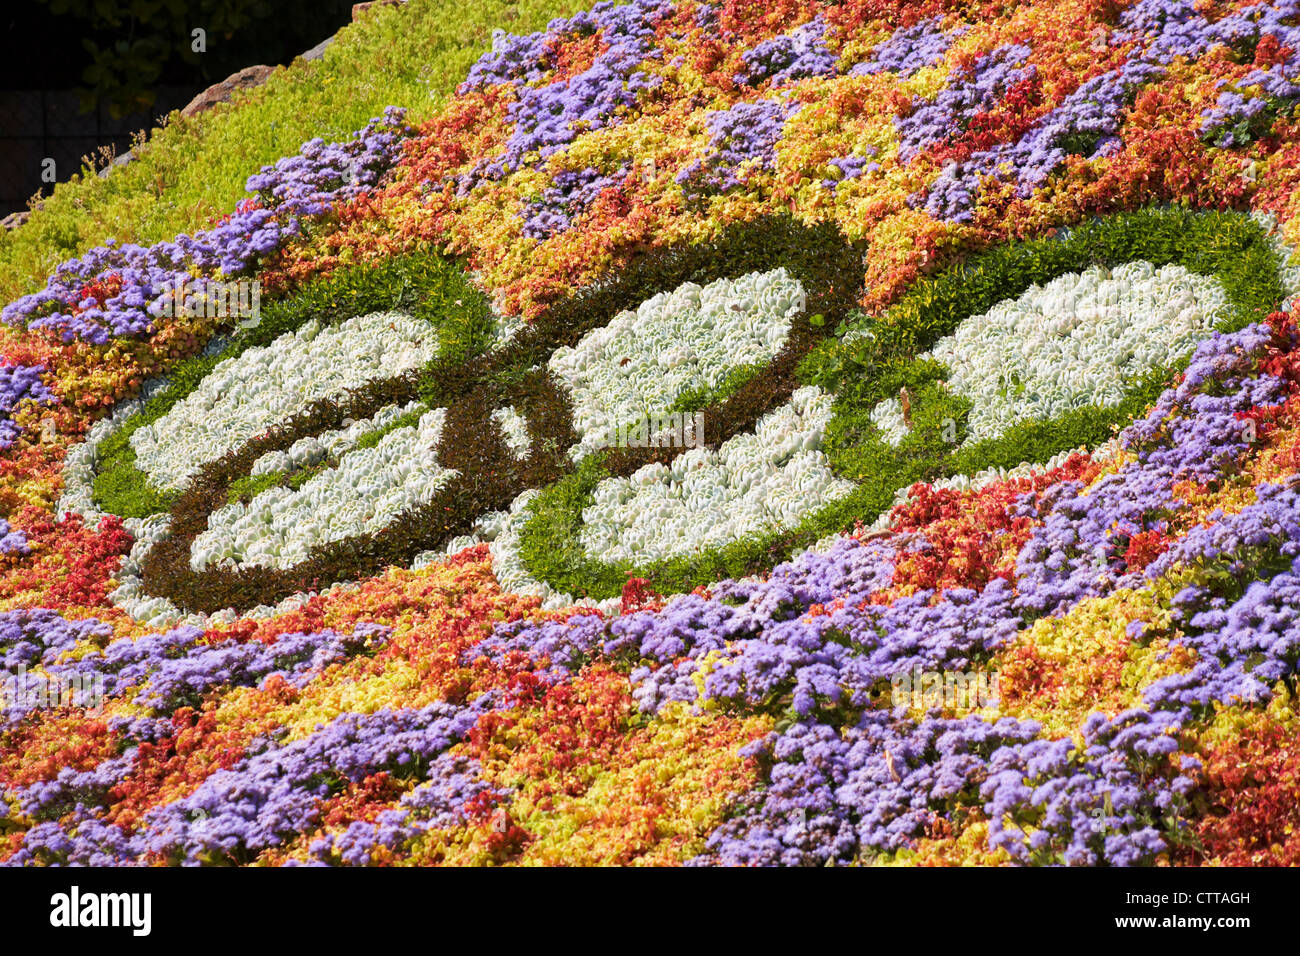 Flower Beds With Plants Arranged